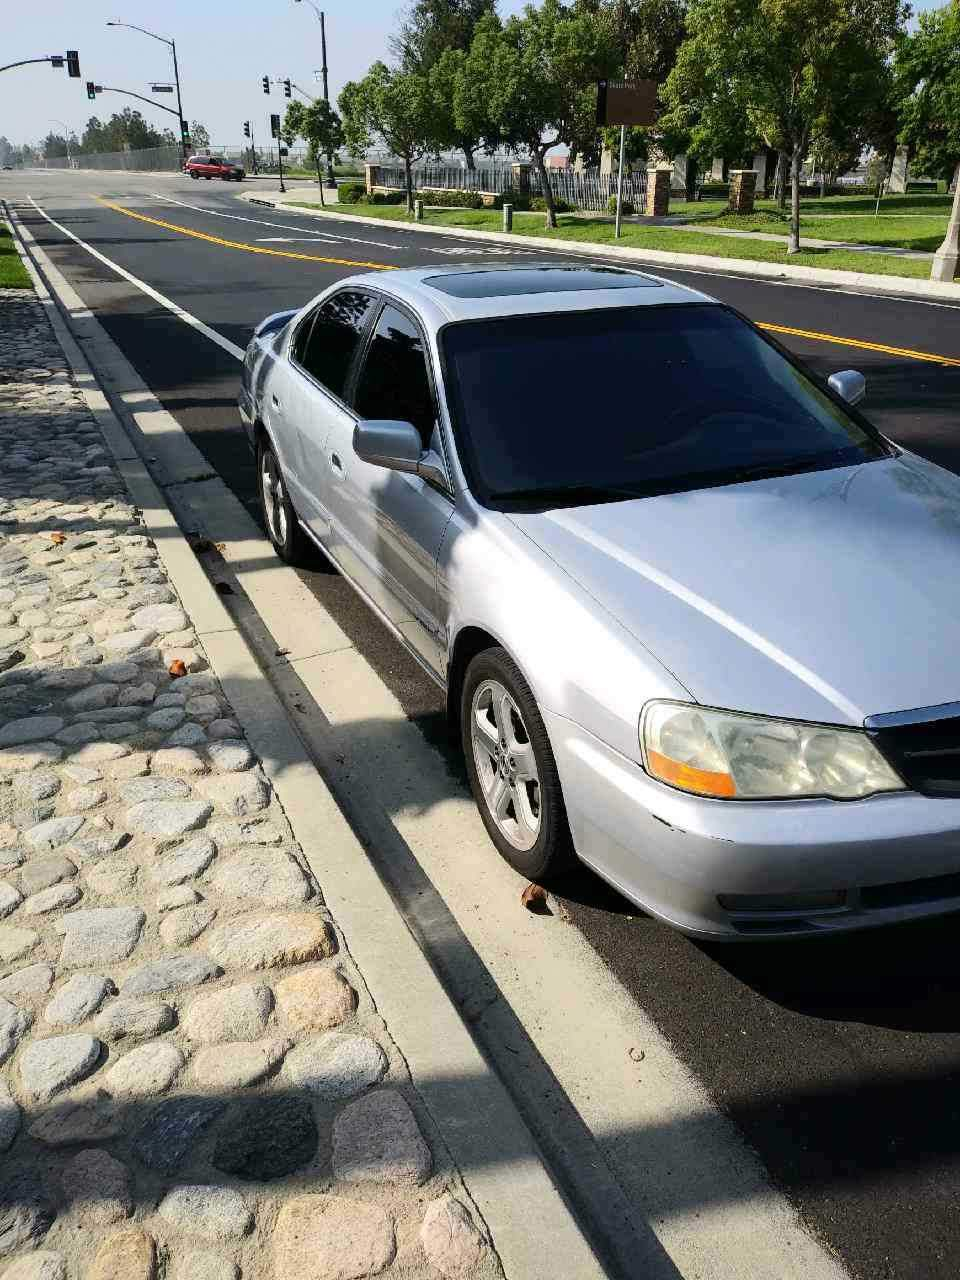 2003 Acura TL 3.2 Type S Luxury Vehicle